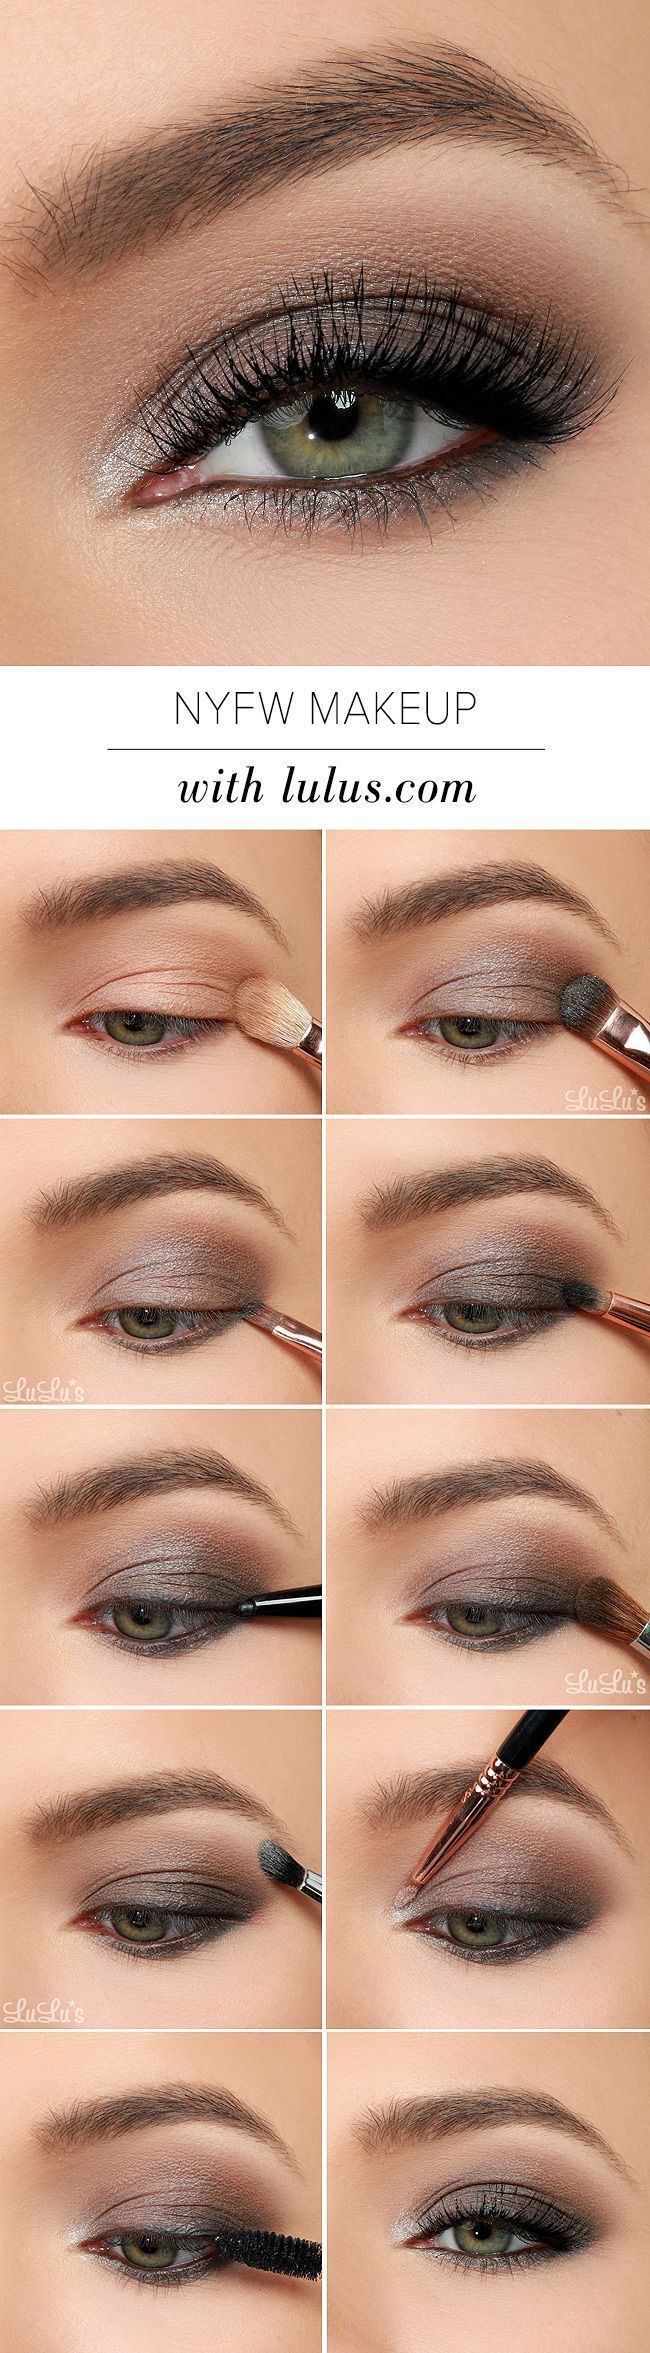 Black and silver eye makeup`tutorial   troupe   maquiagem.